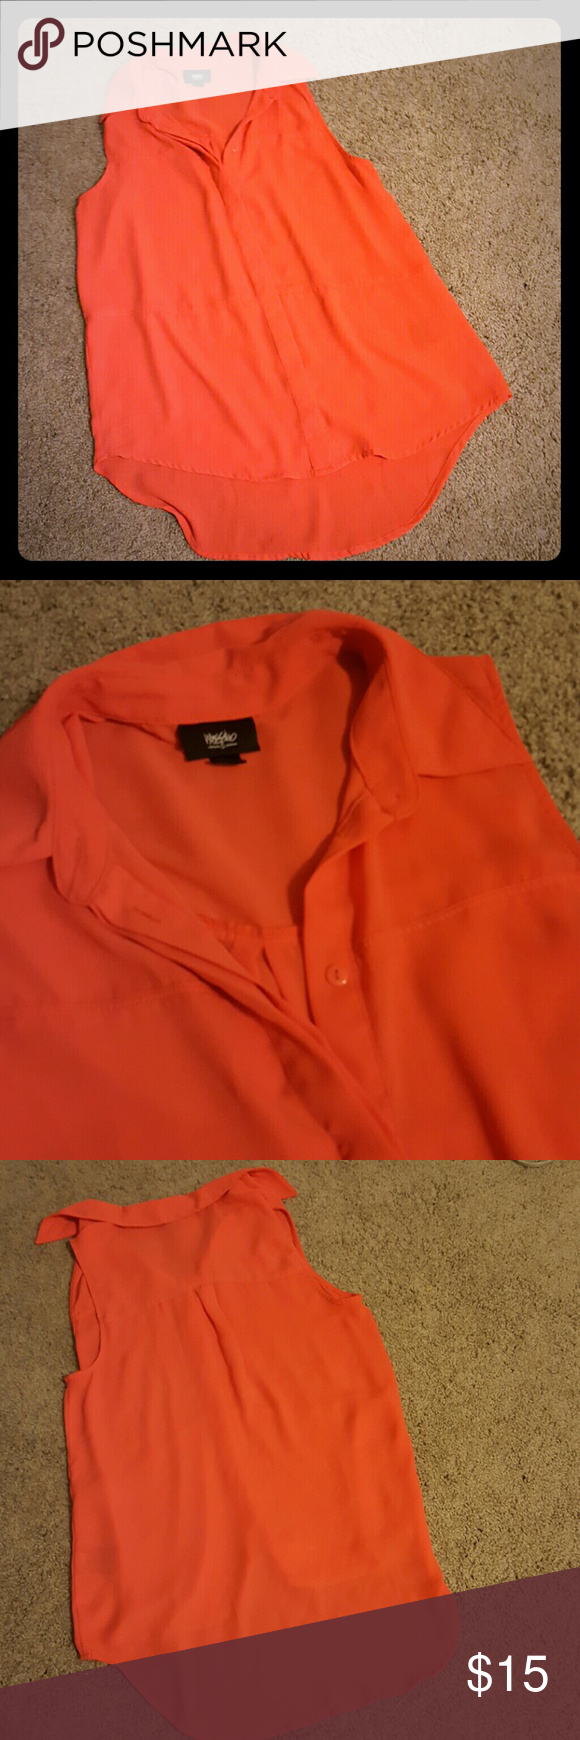 Bright Collared Tank Mossimo long, bright orange tank top with button-down front. Buttons are hidden. Back of shirt longer than the front. 100% Polyester Mossimo Supply Co. Tops Blouses